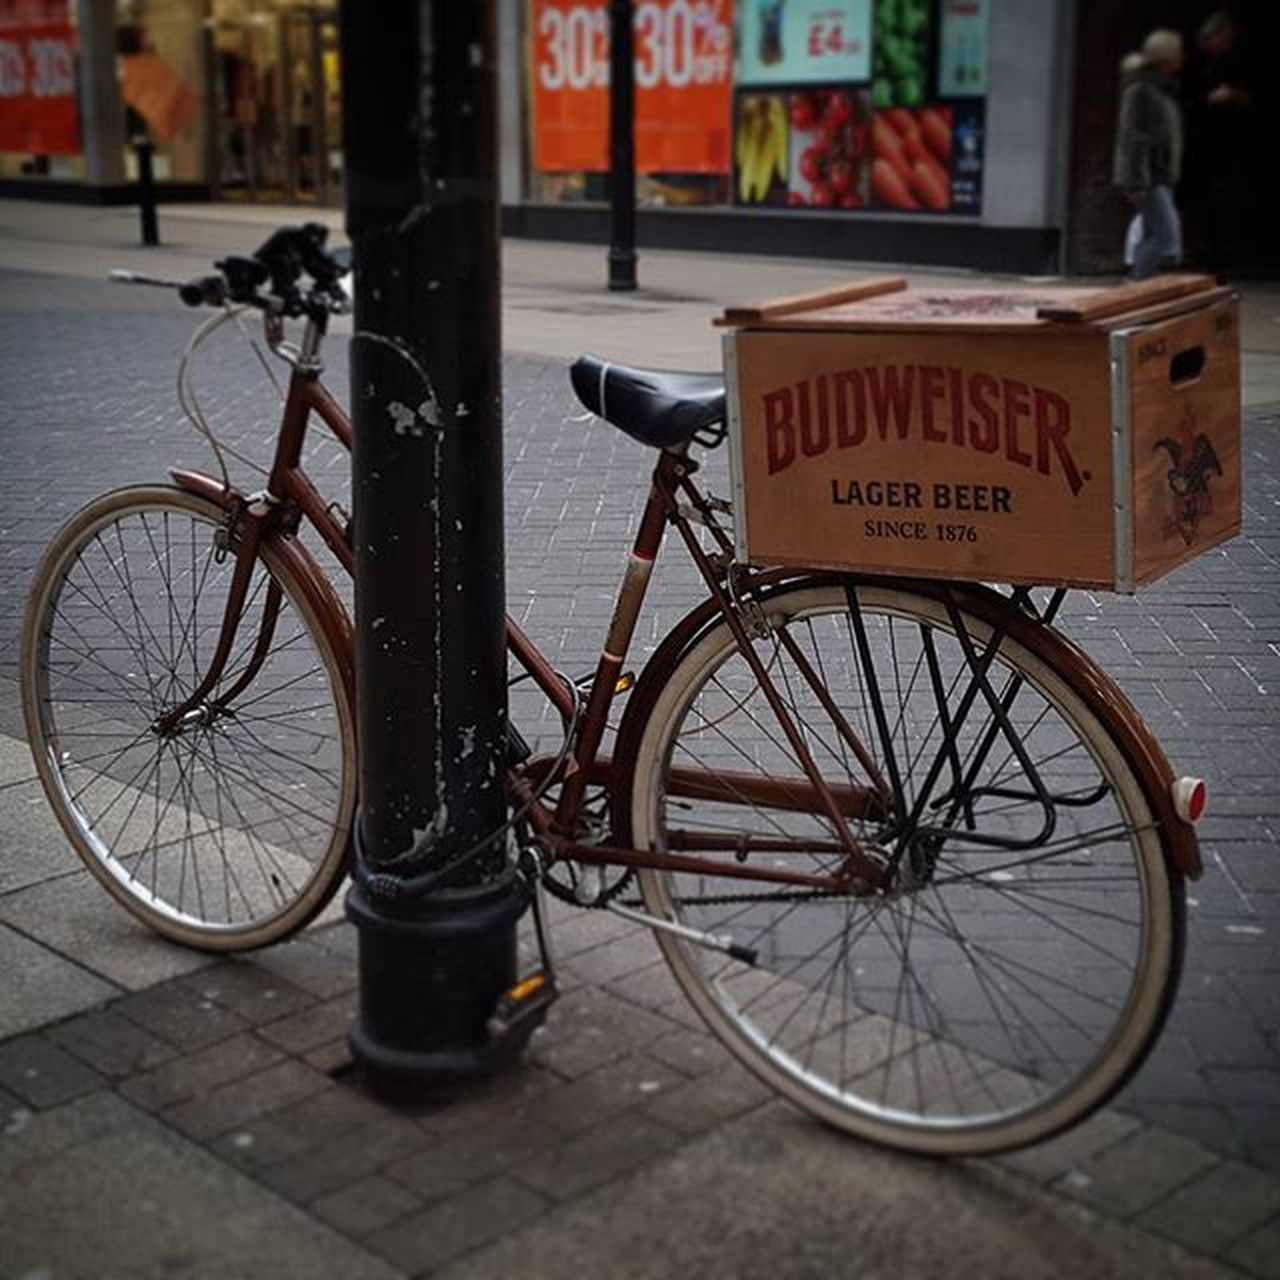 Love this older style Raleigh Bicycle with its Budweiser box :) www.facebook.com/melaniecycles Cycling Cycle Bikewithabasket Bikewithabox Cyclingisfun Urbancycling Raleighbikes Vintagebike Bikesandbeers Traditionalbicycle